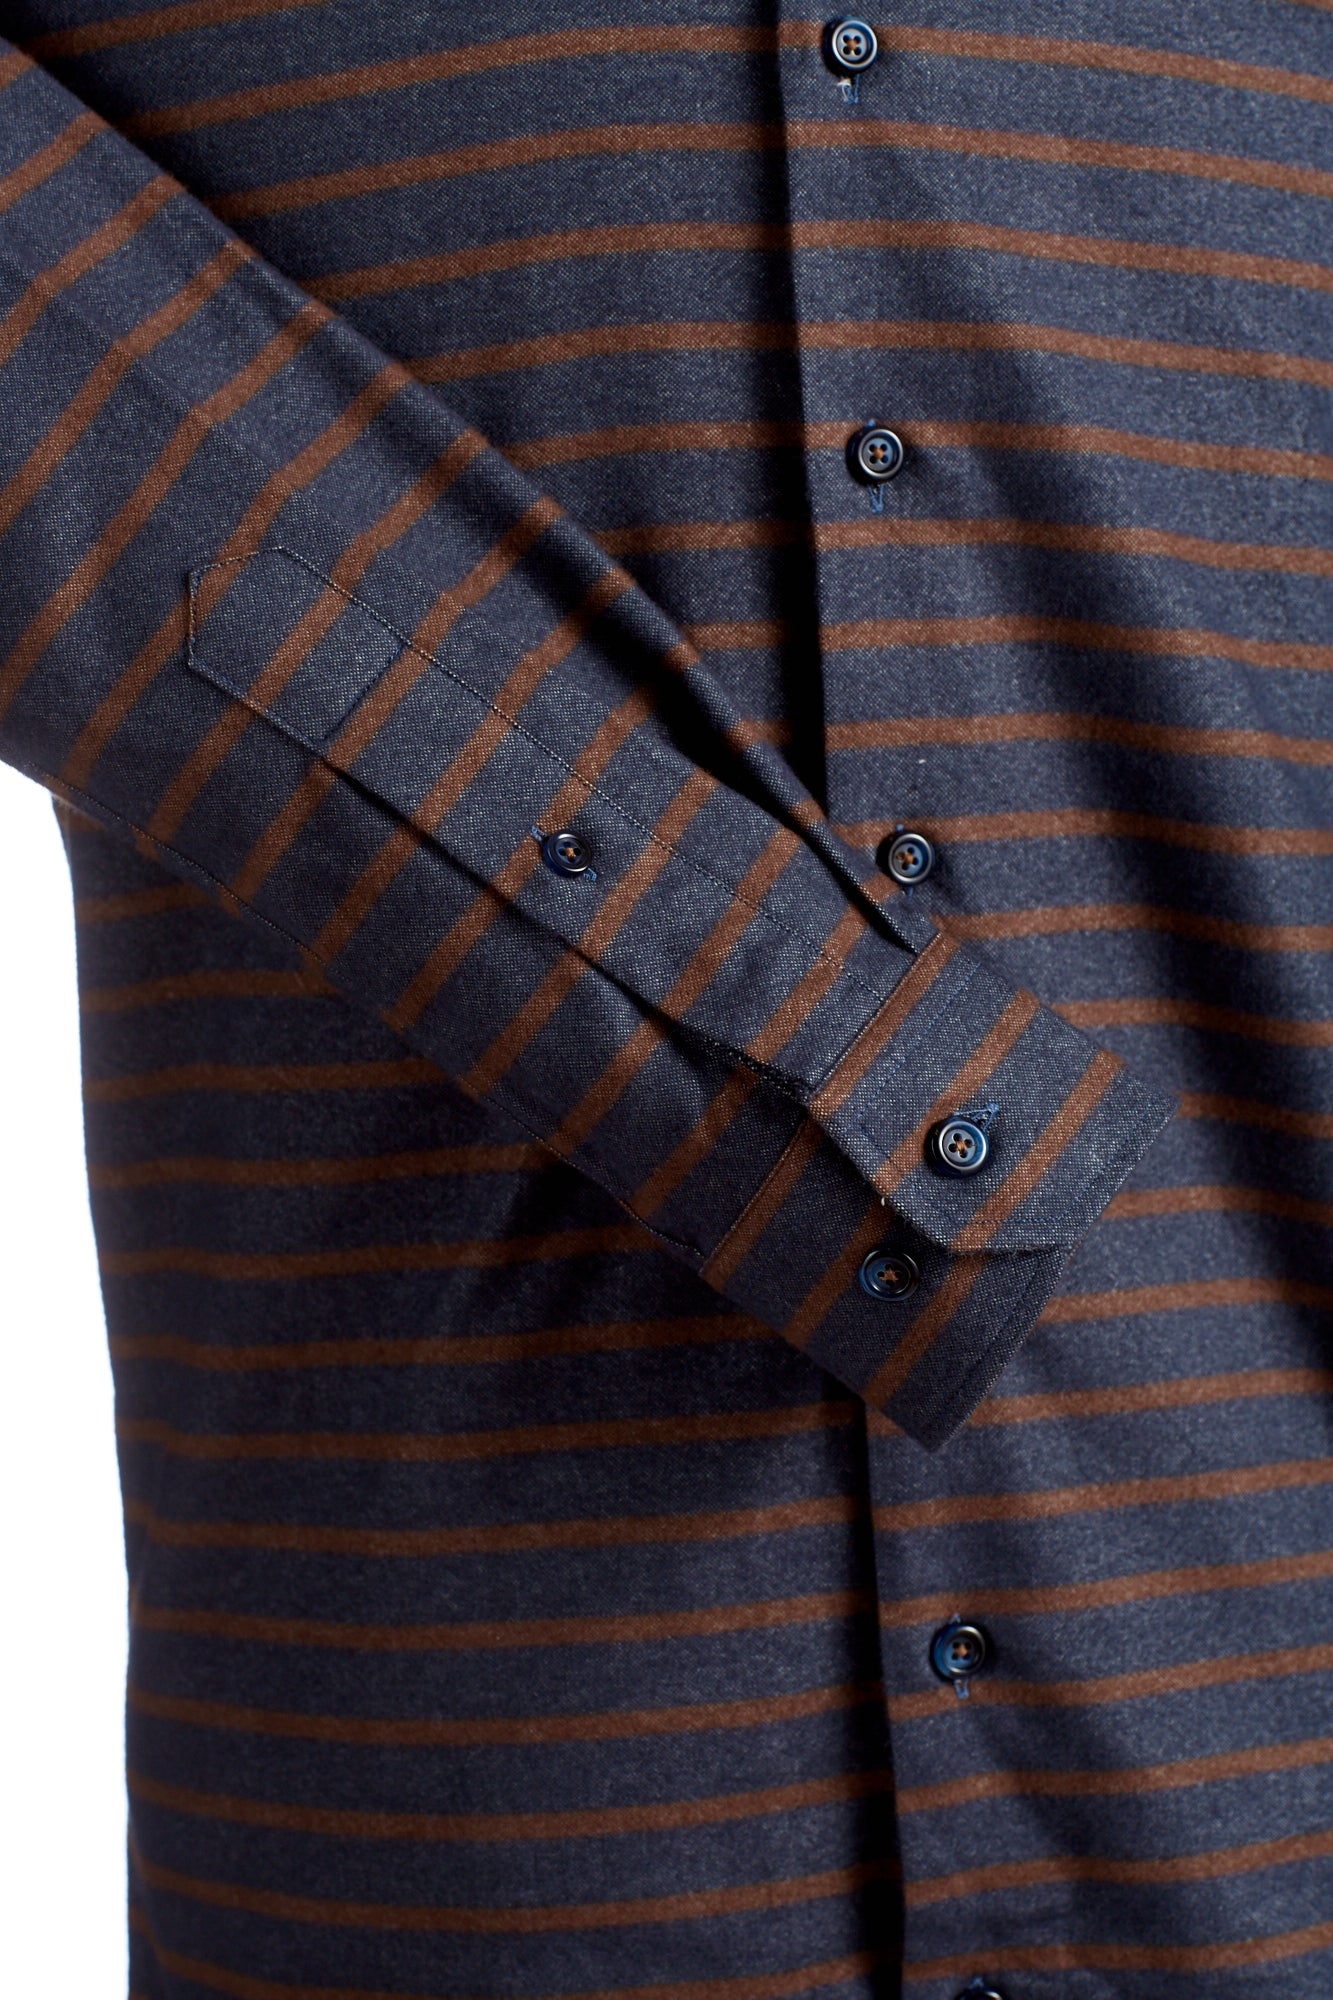 Lipson Shirts Heathered Blue with Rust Orange Stripes Flannel